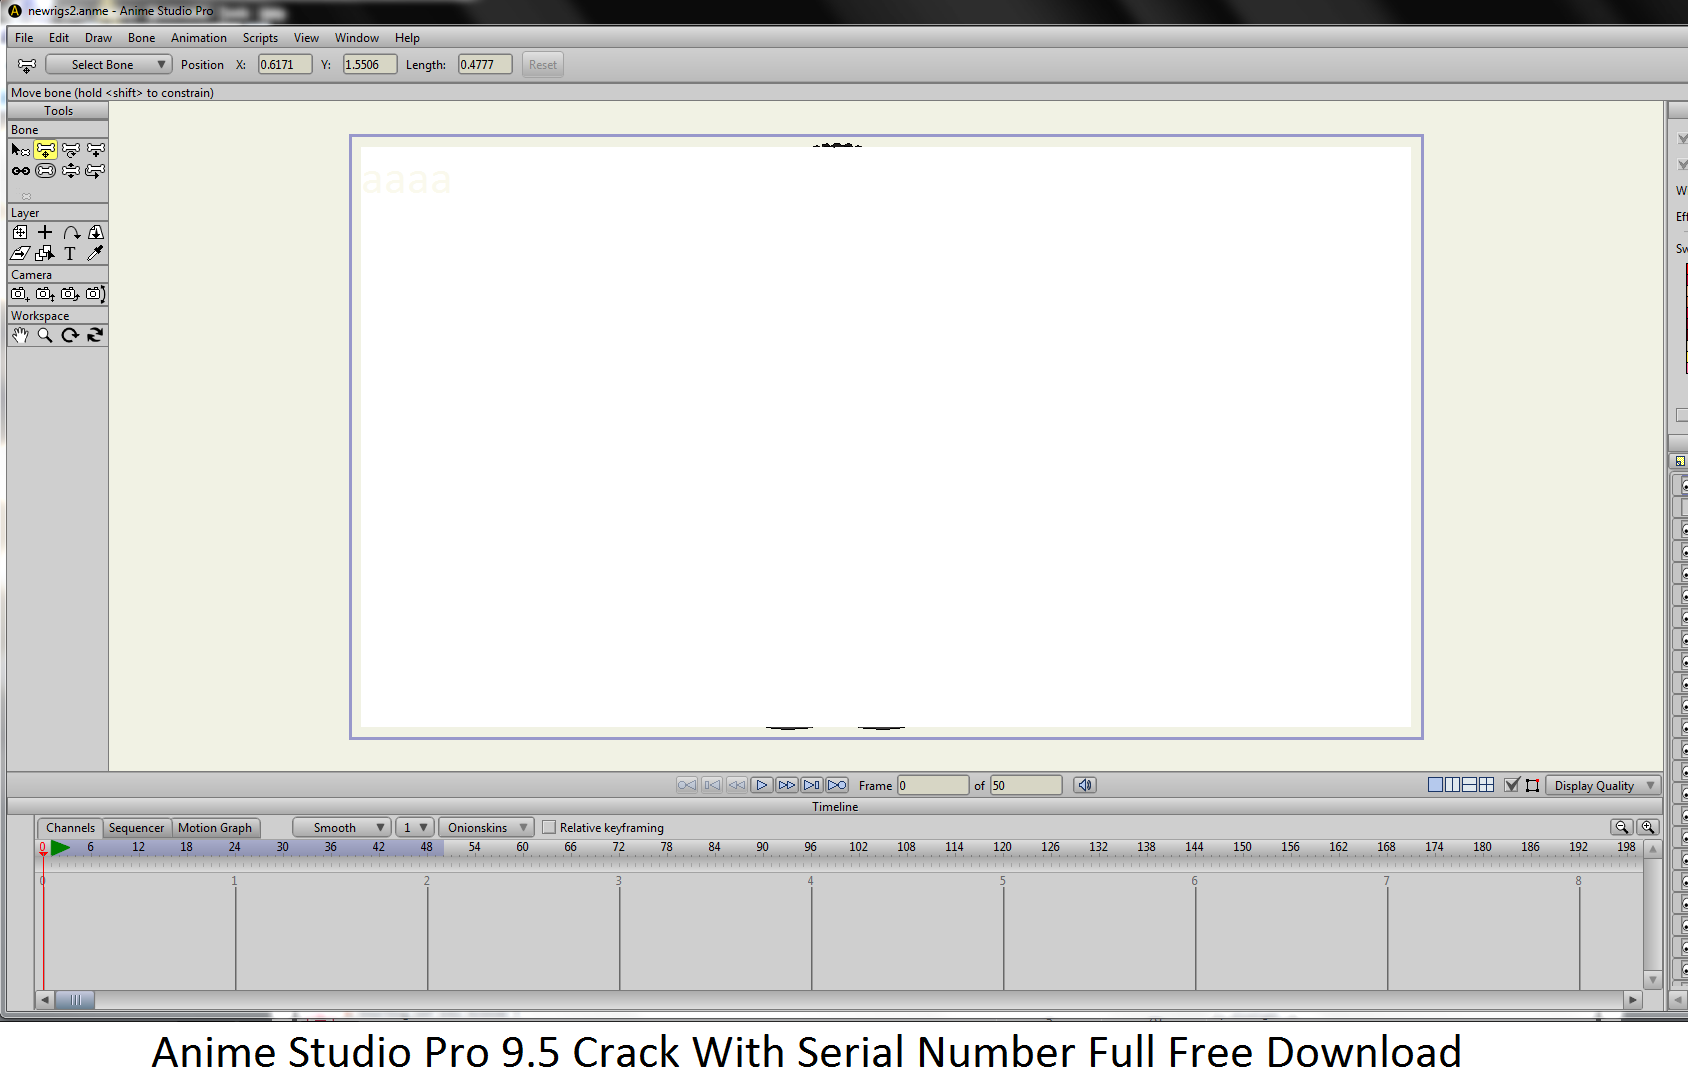 Anime Studio Pro 9.5 Crack With Serial Number Full Free Download